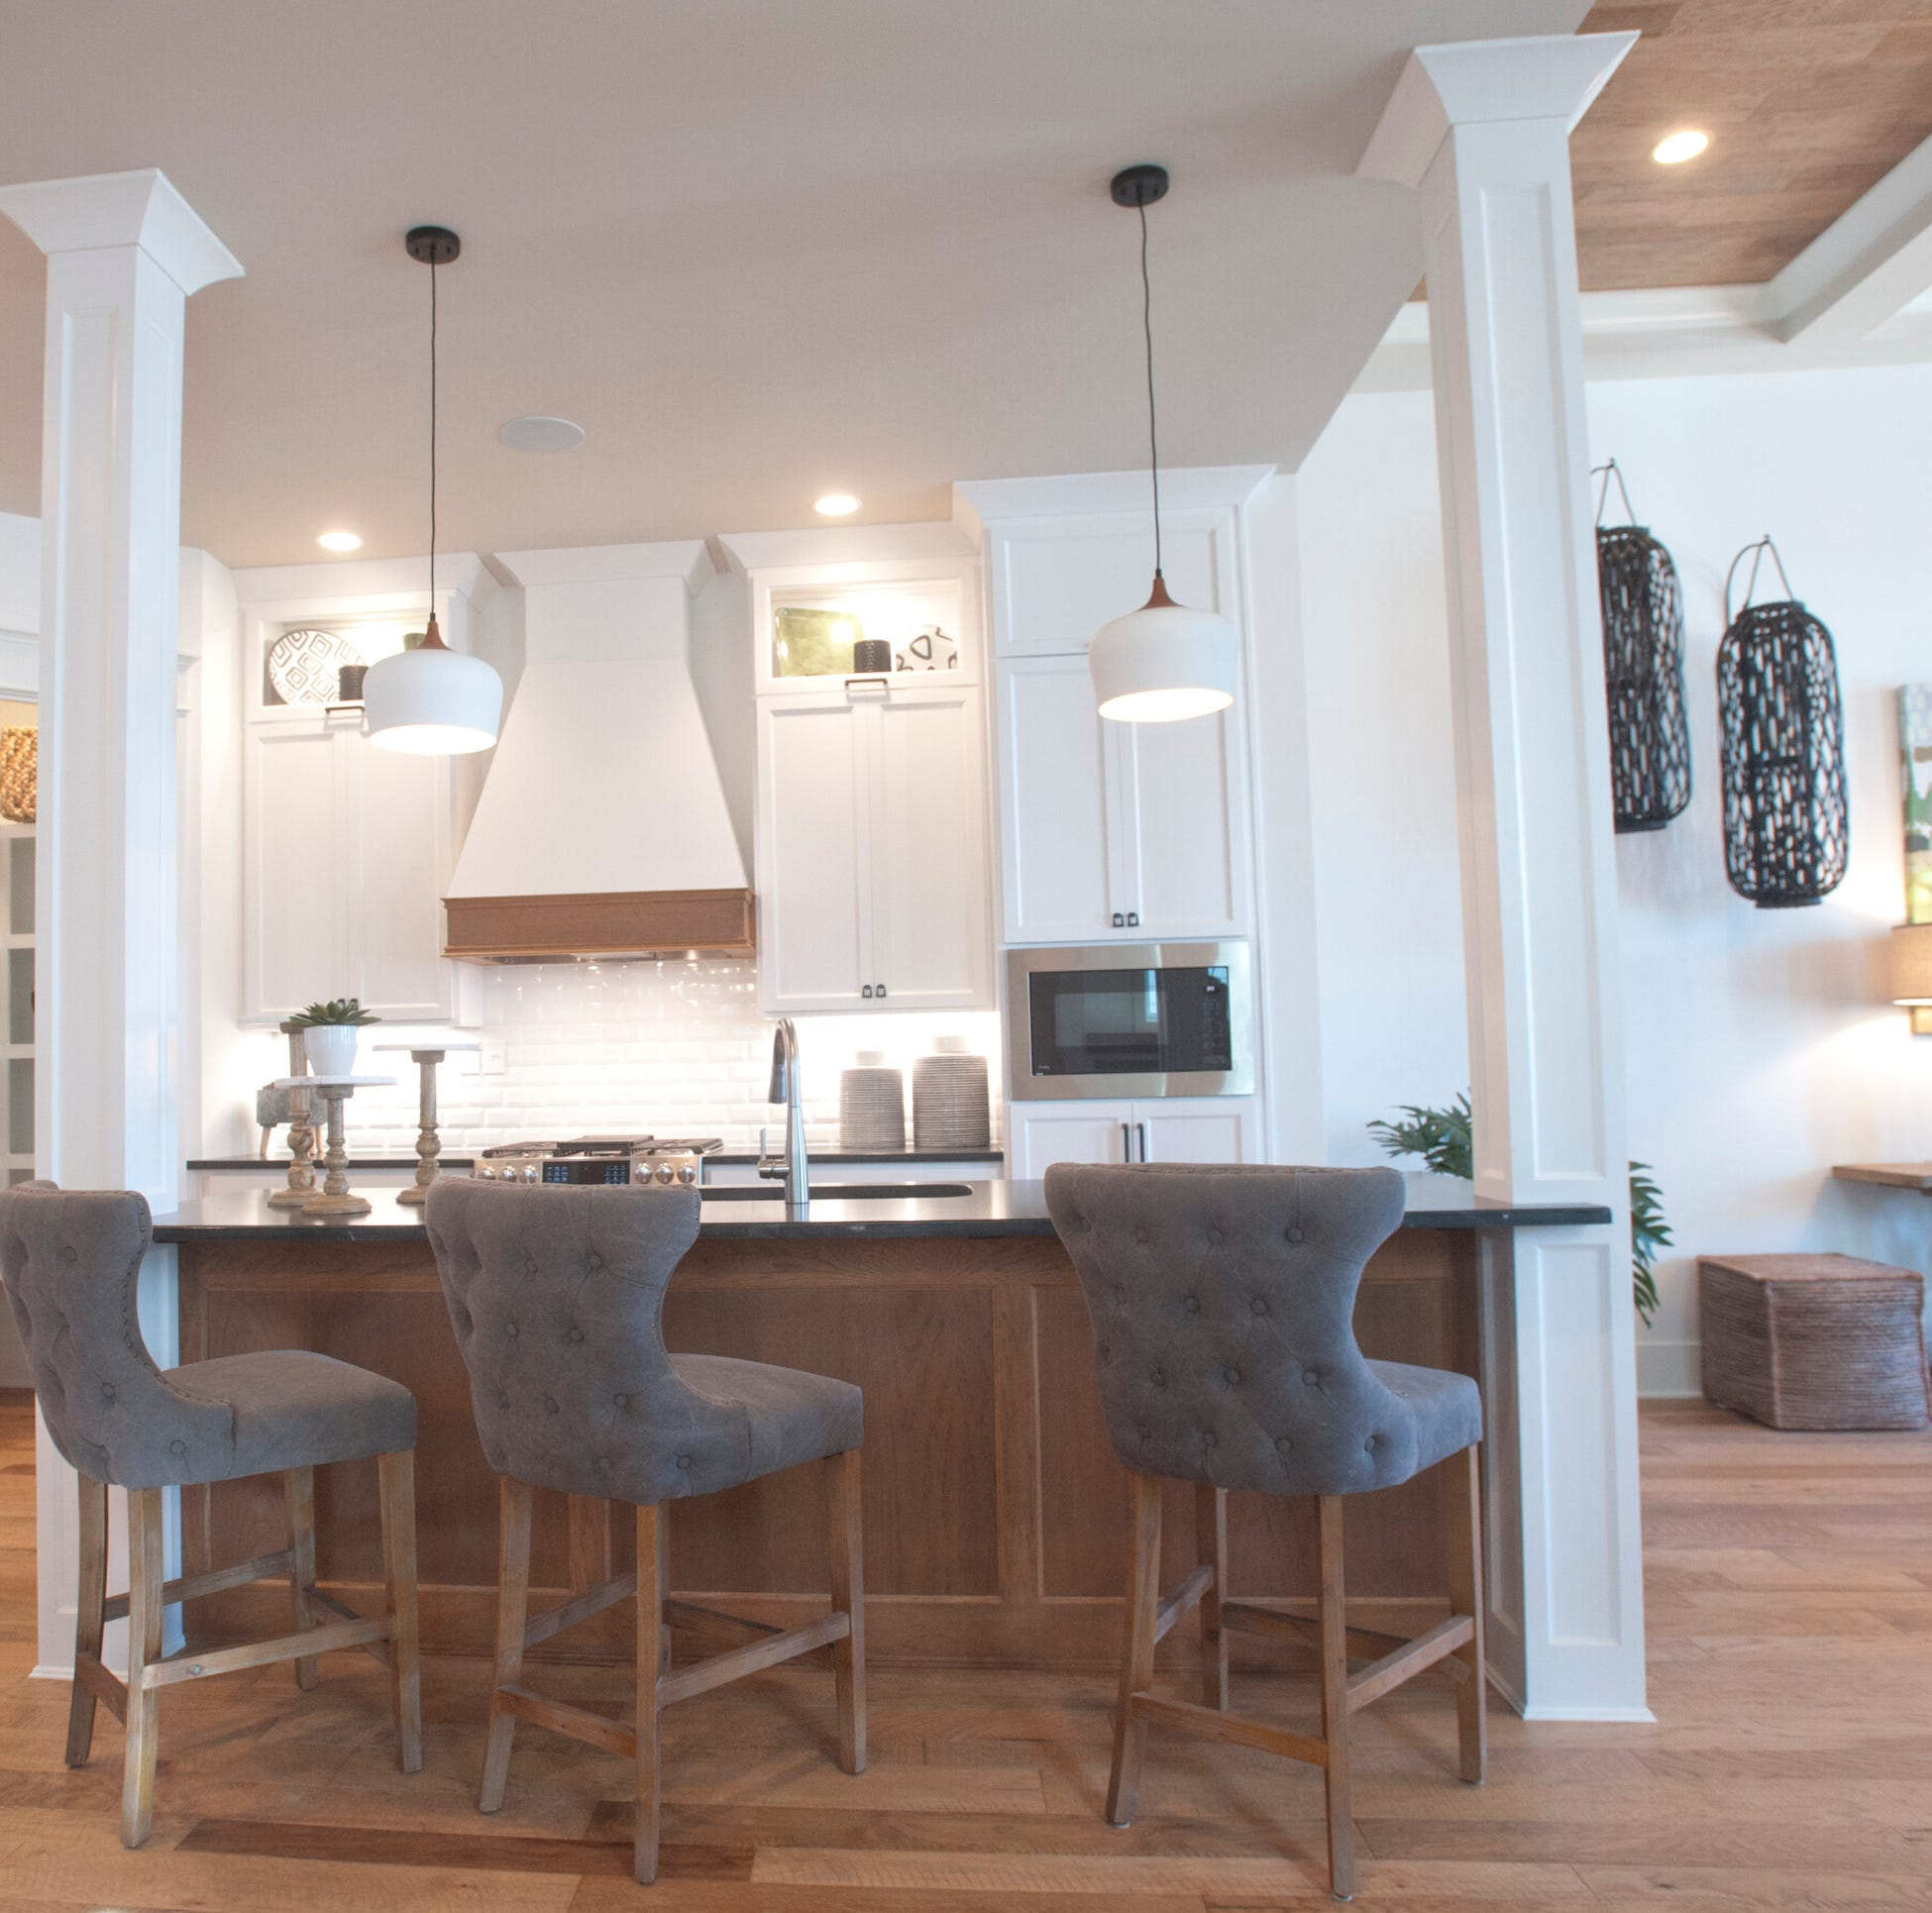 Want a warm and inviting space? This Norton Commons home's neutral tones may inspire you